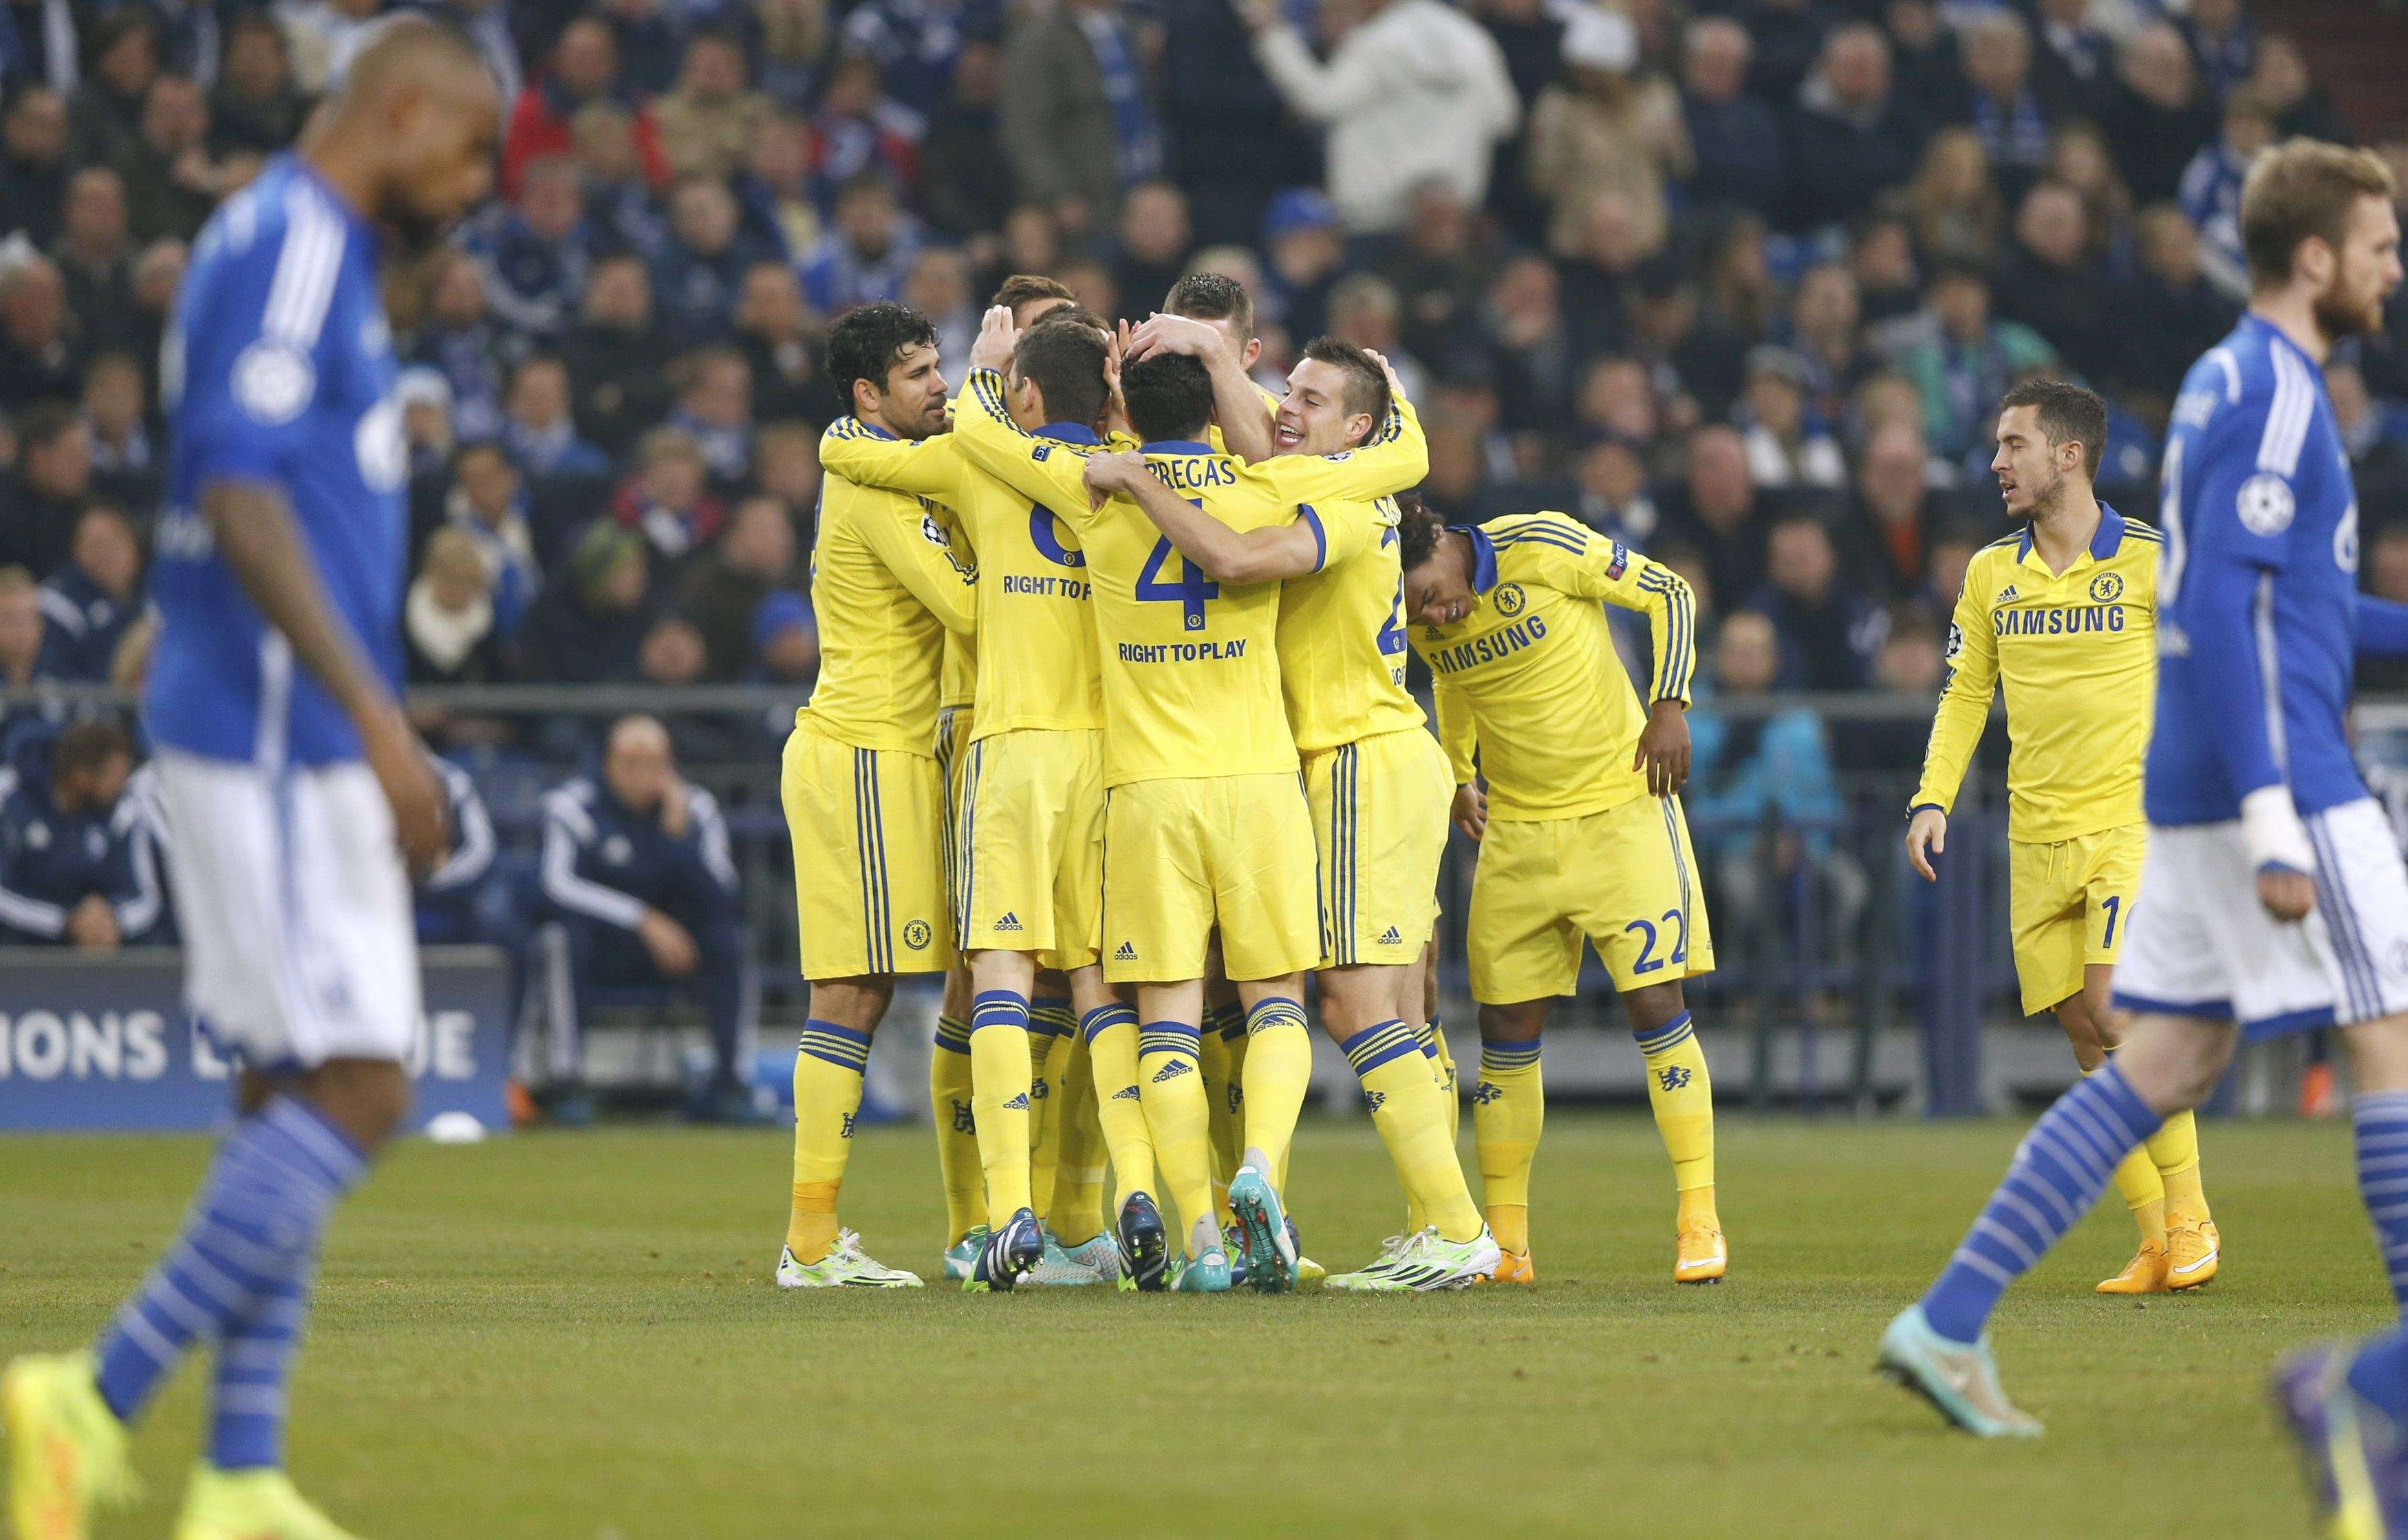 Chelsea players celebrate after John Terry scored a goal against Schalke 04 during their Champions League group G soccer match in Gelsenkirchen November 25, 2014. REUTERS/Wolfgang Rattay (GERMANY - Tags: SPORT SOCCER) Foto: WOLFGANG RATTAY/REUTERS